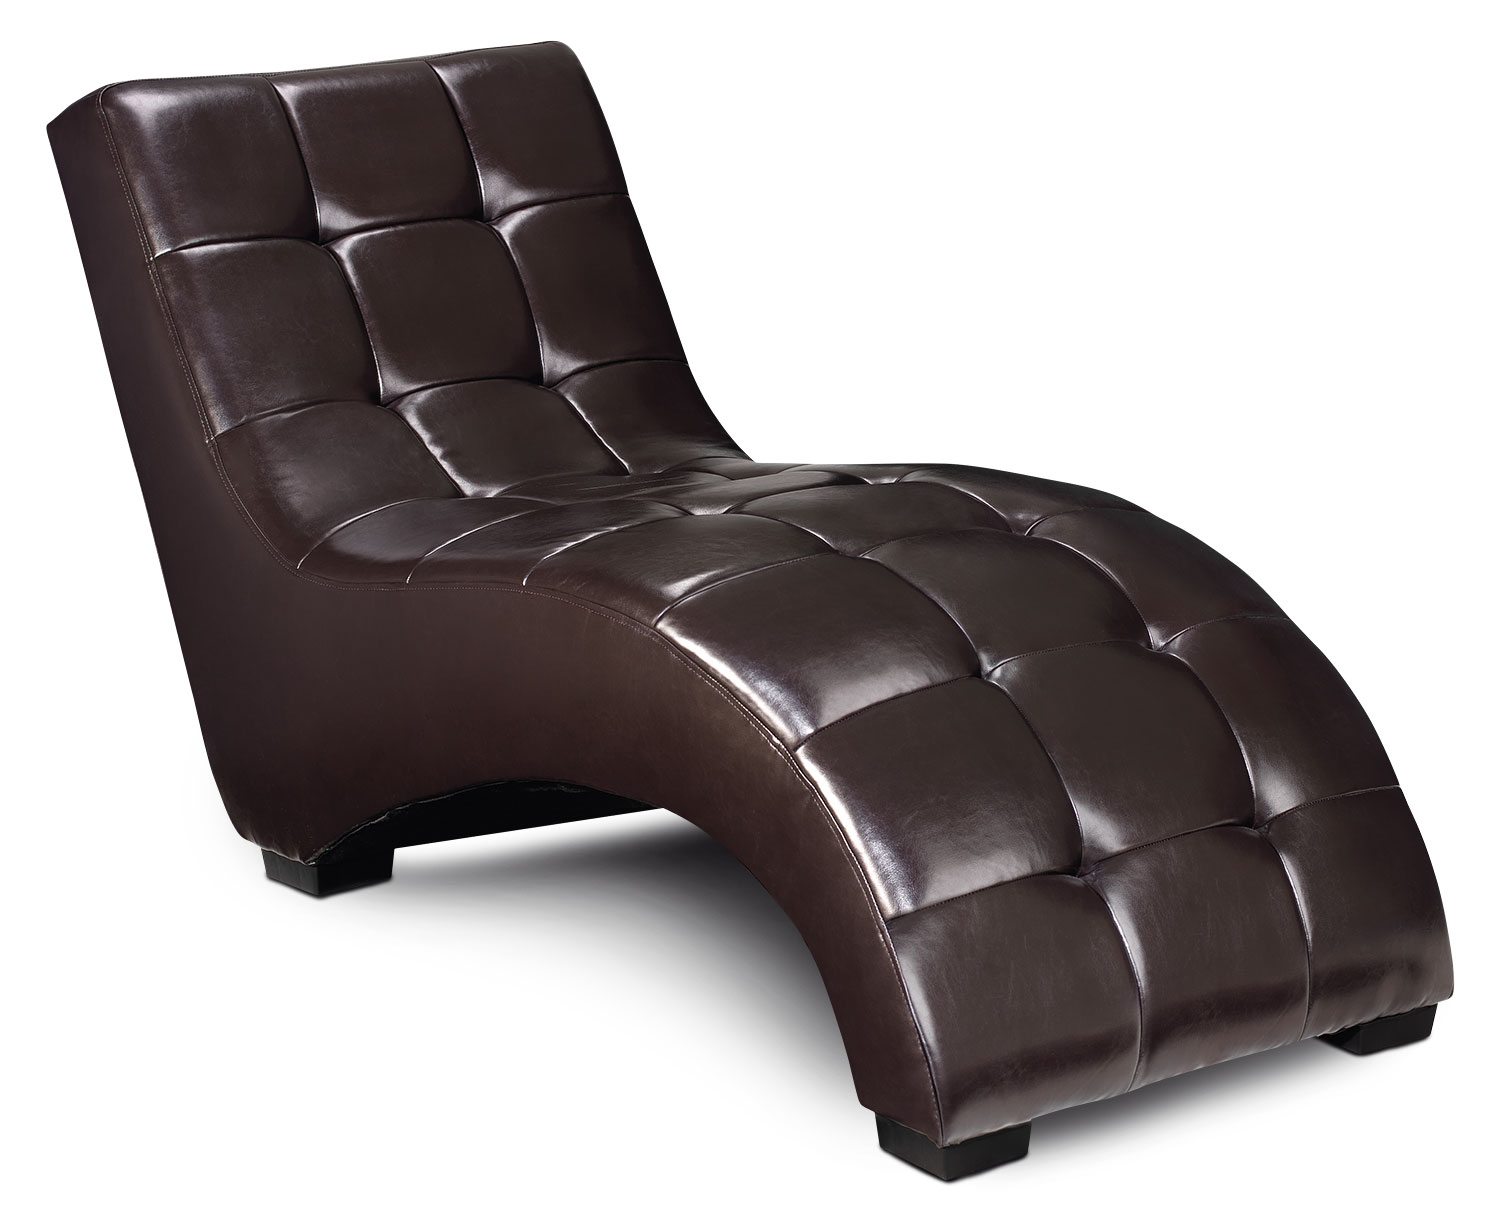 Living Room Furniture - Lulu Chaise - Brown